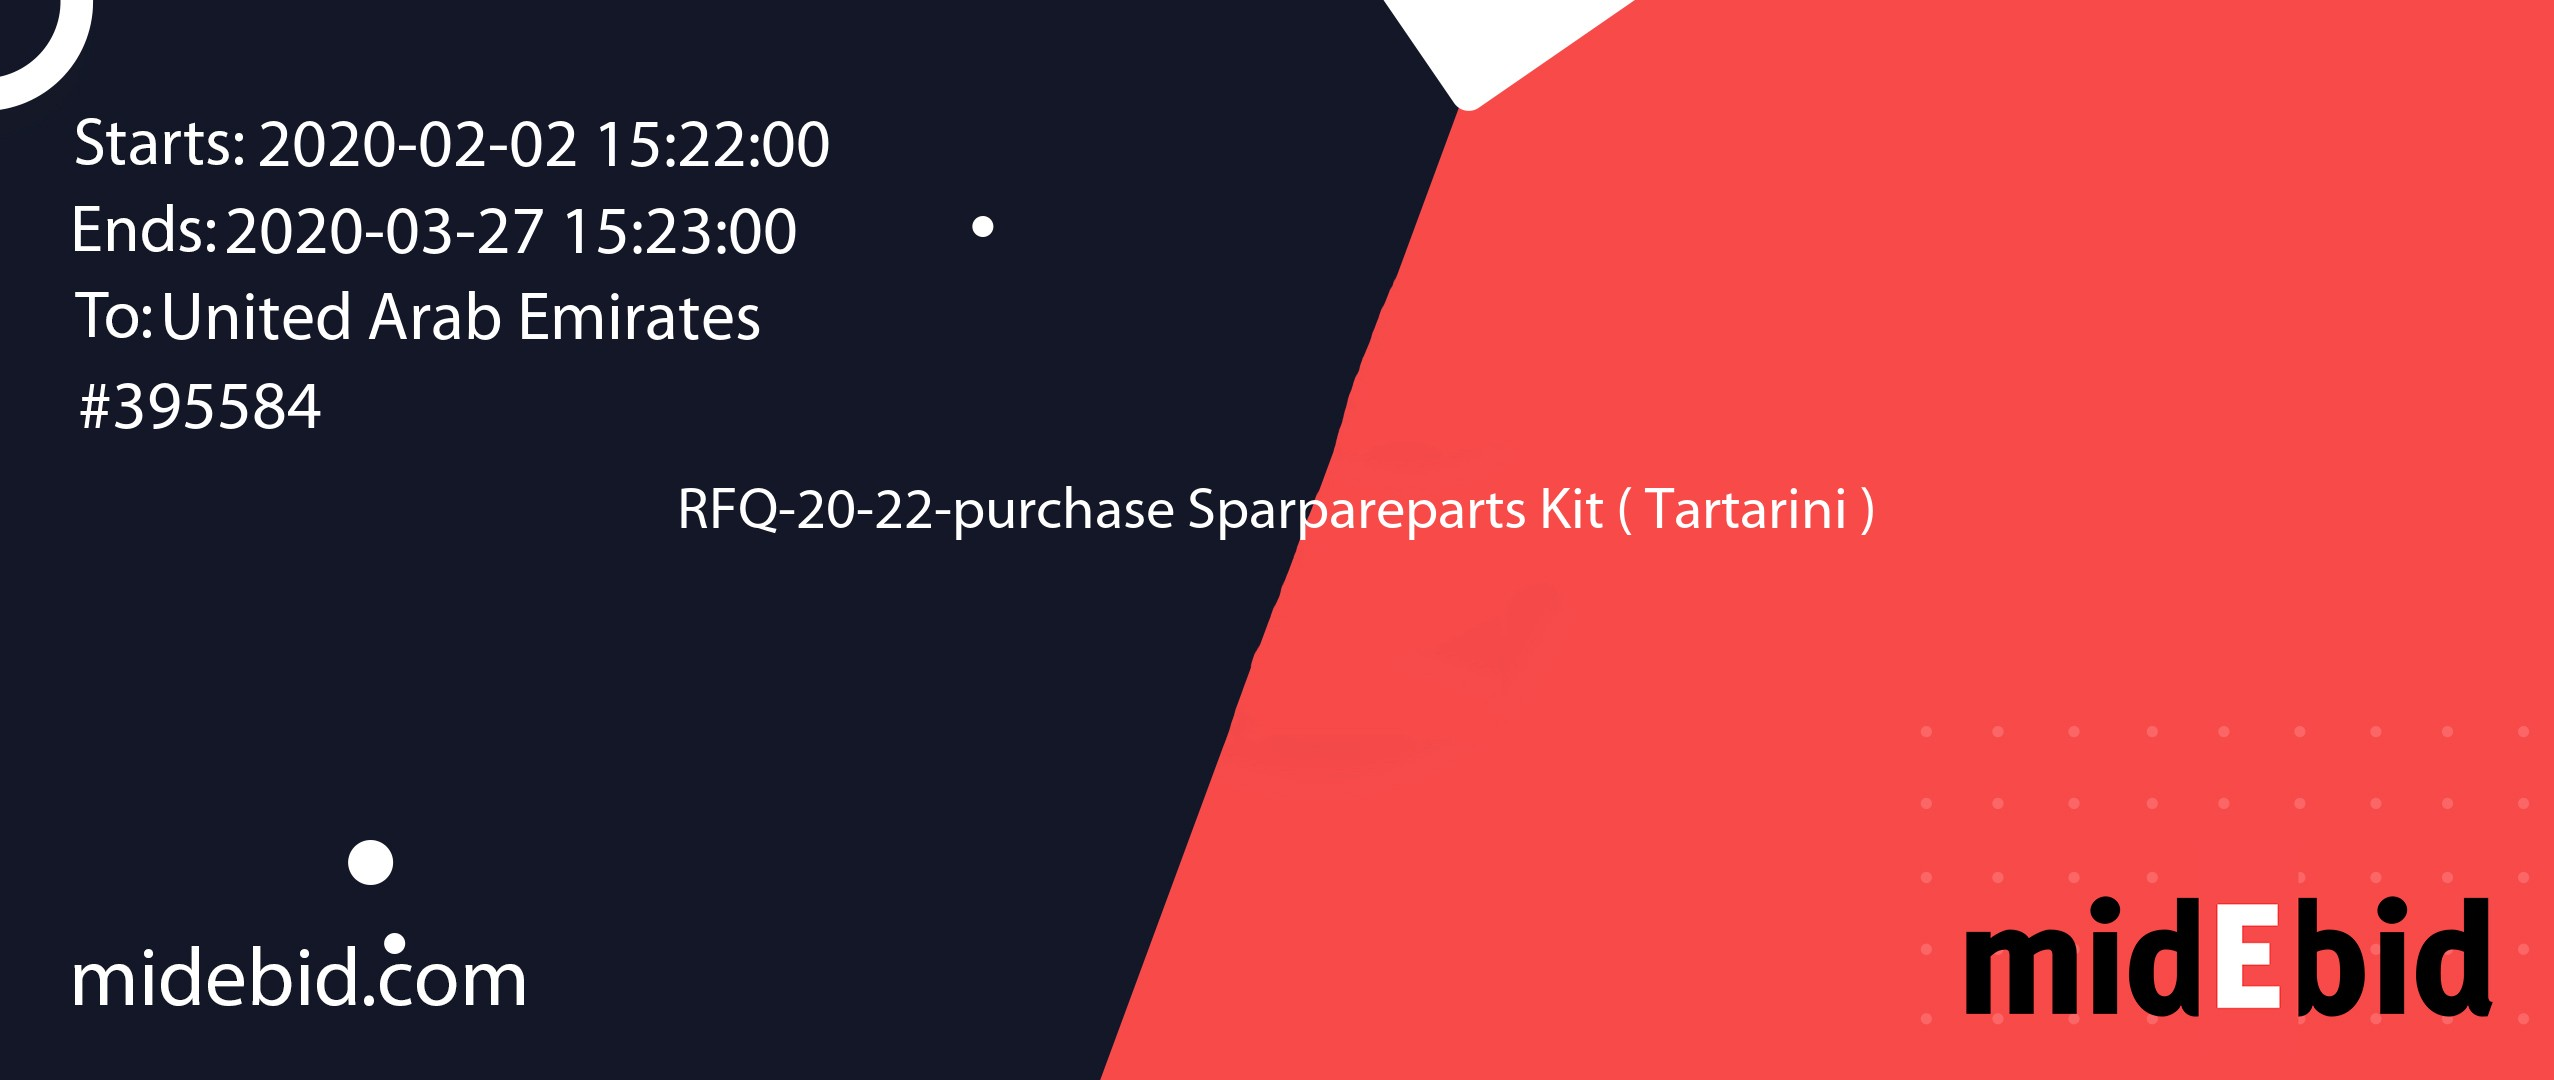 #395584 bid for RFQ-20-22-purchase Sparpareparts Kit ( Tartarini ) in United Arab Emirates image banner